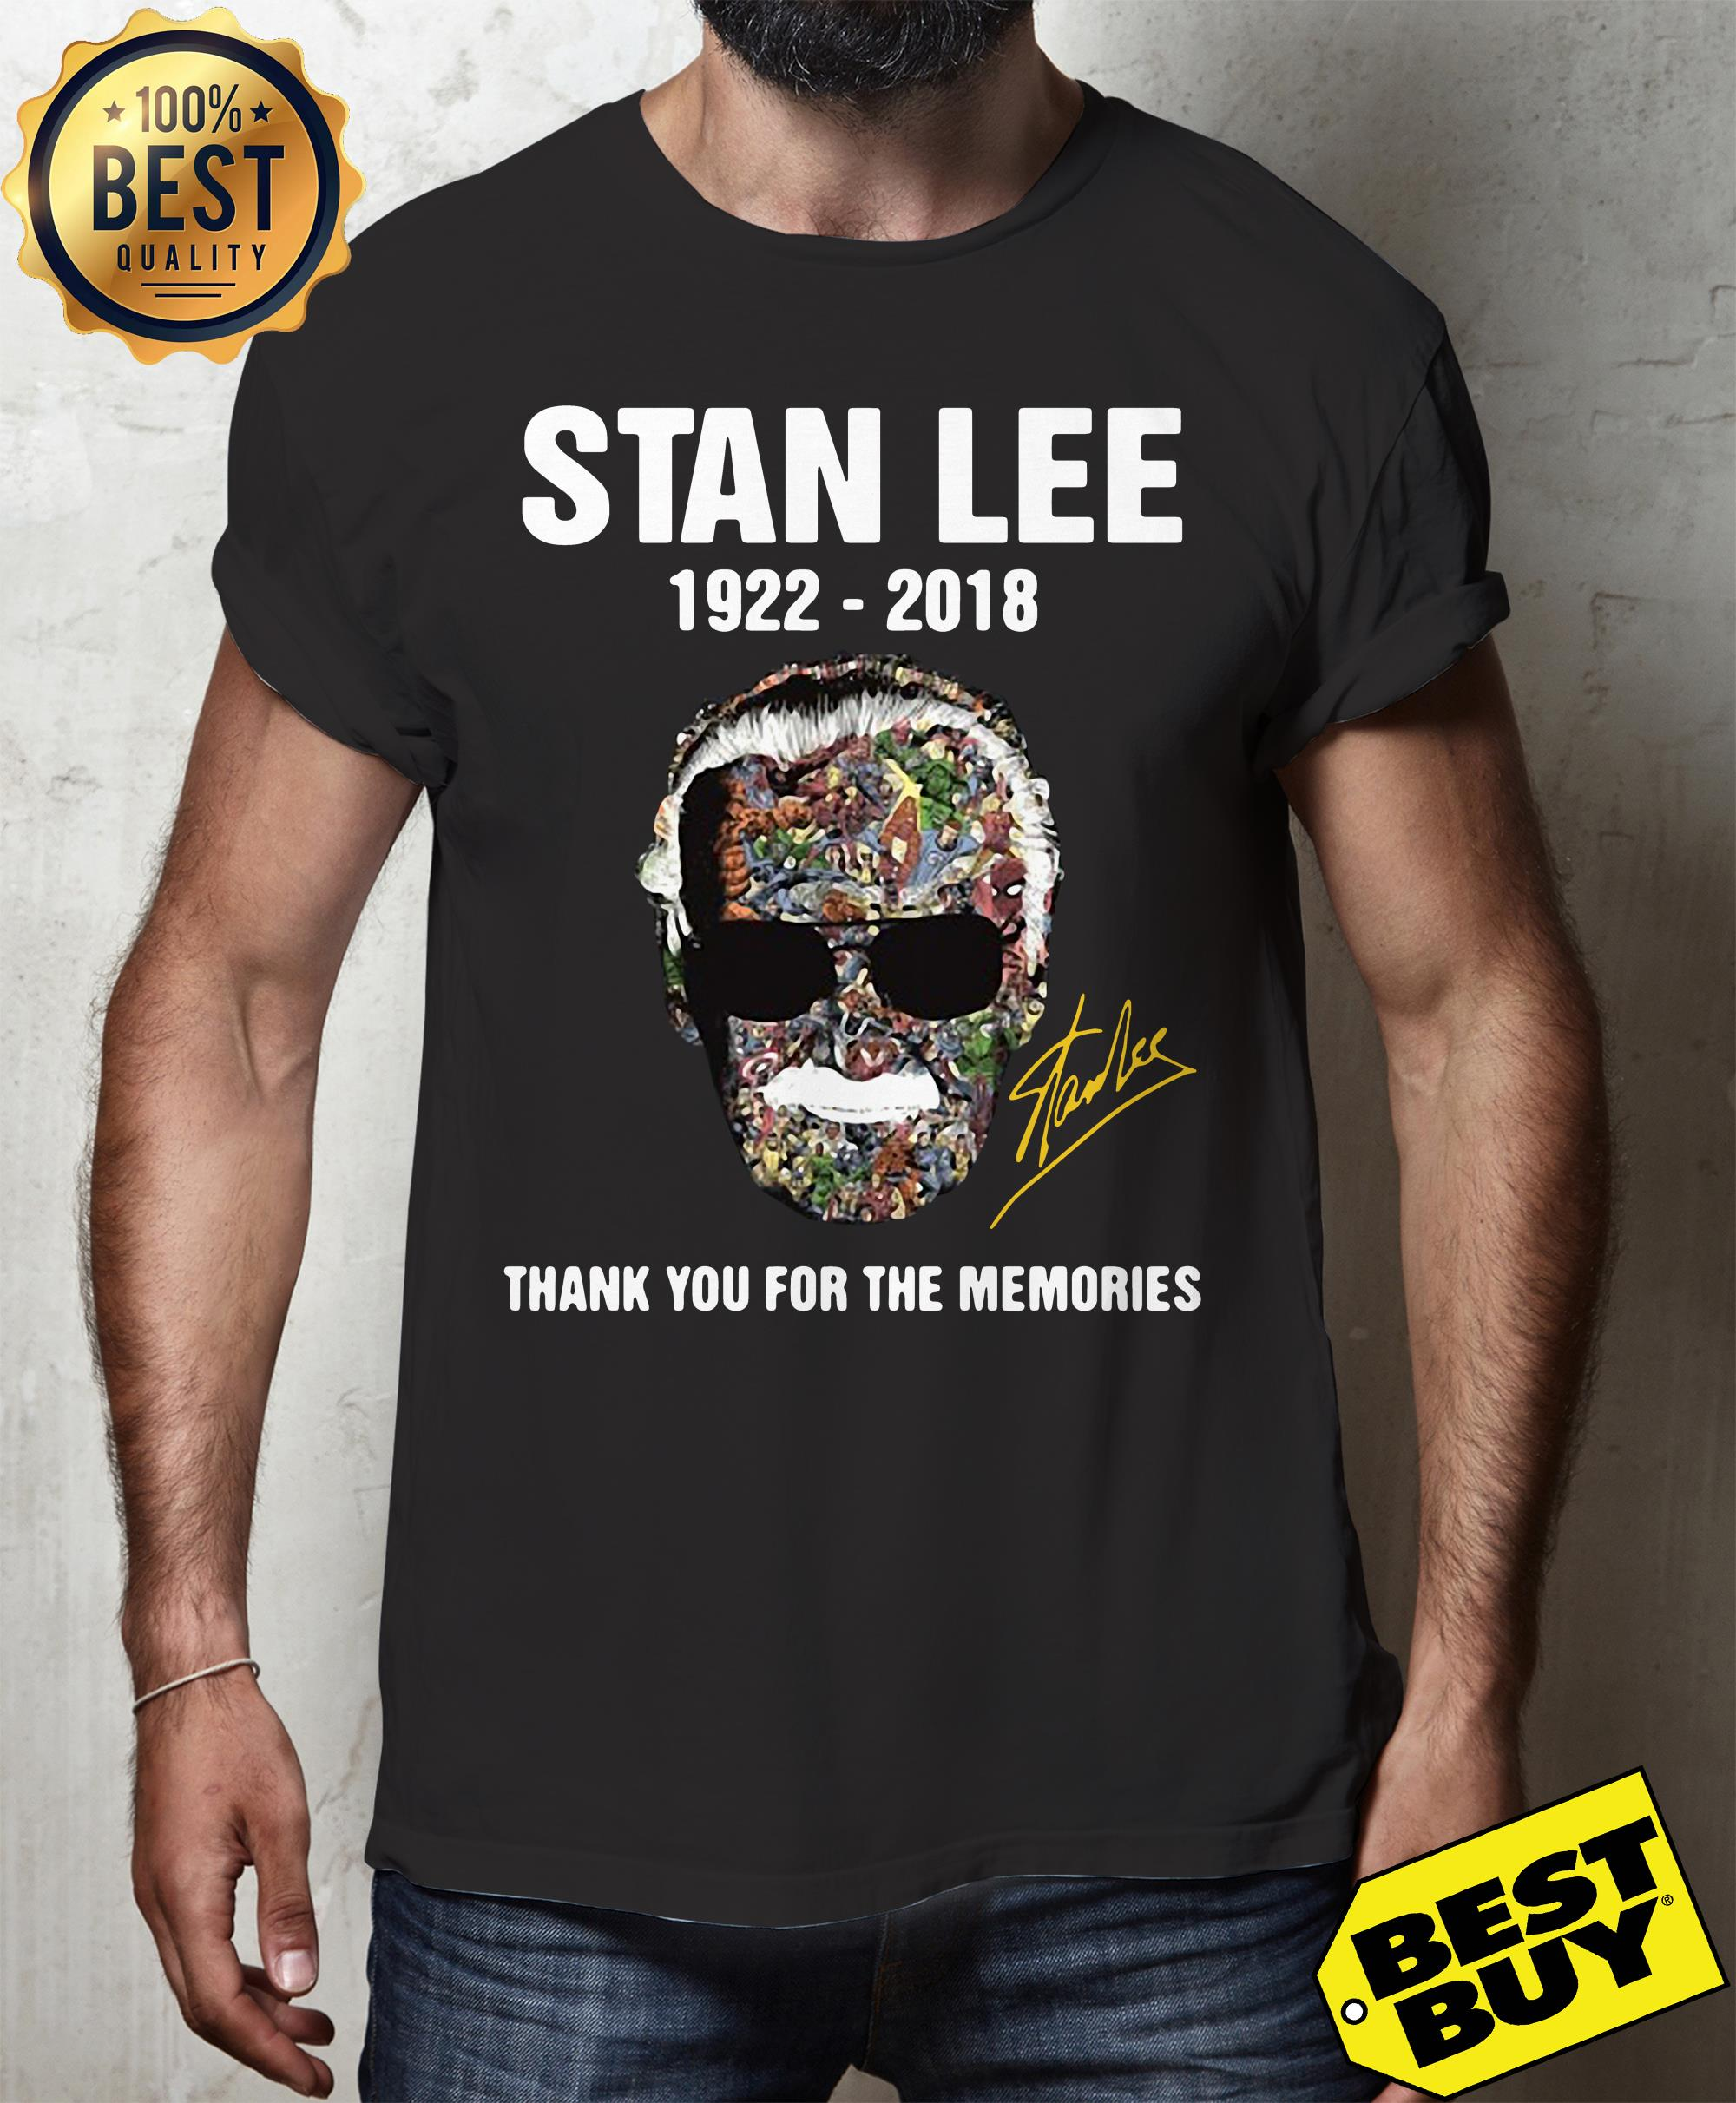 Stan Lee Thank For The Memories 1922 2018 tank top